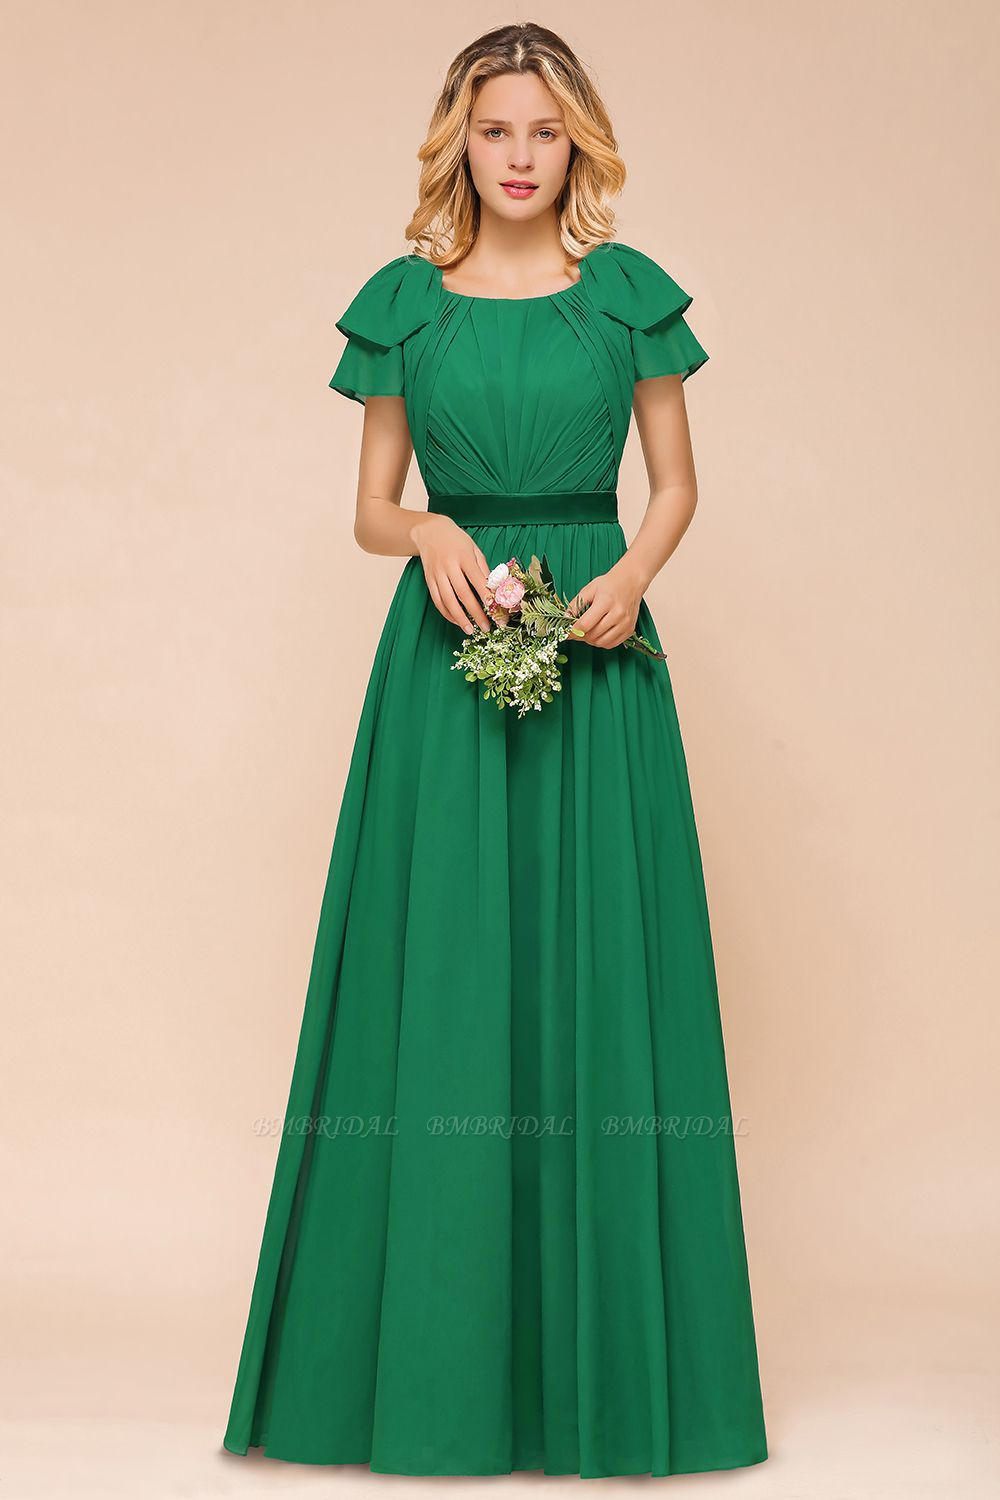 Emerald Short Sleeves Chiffon Ruffles Long Bridesmaid Dresses Online